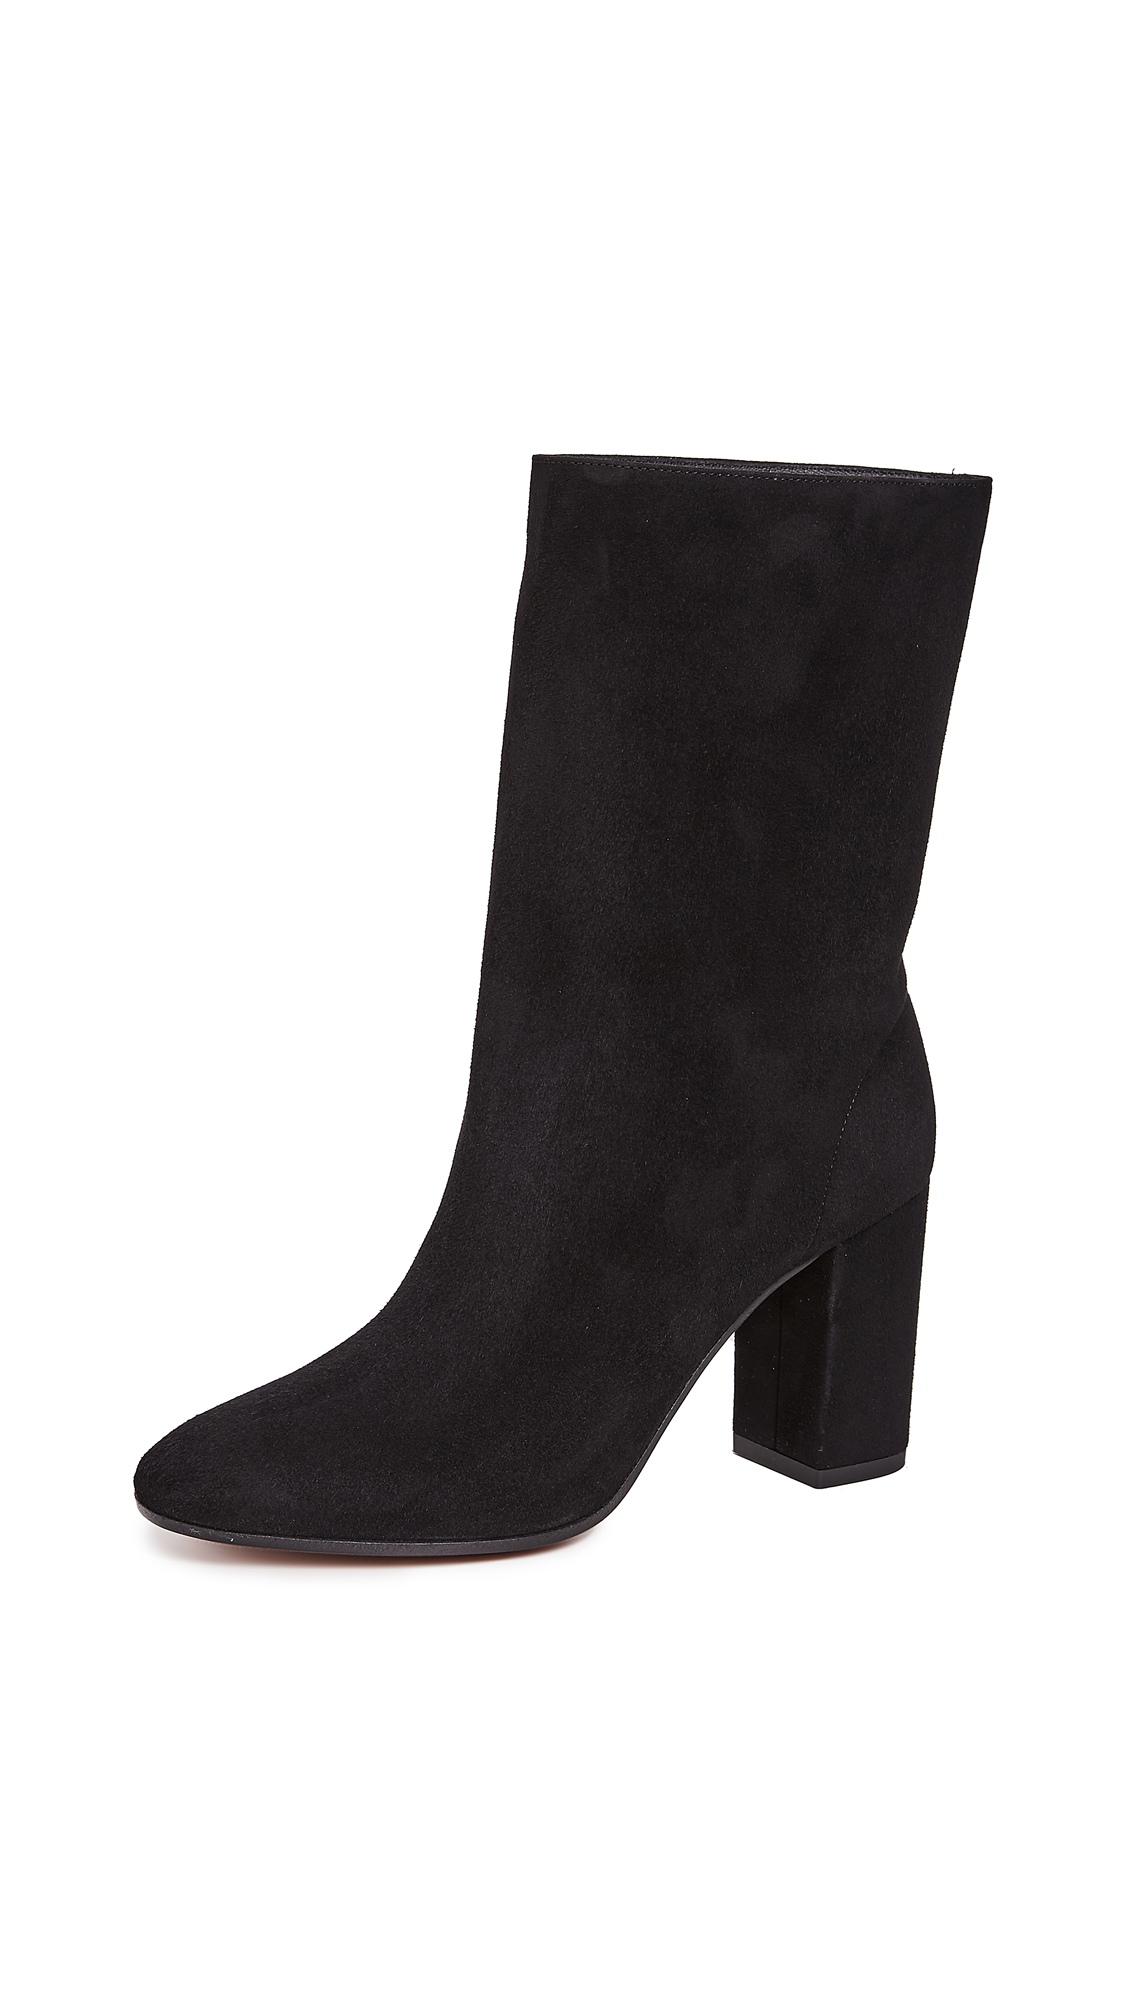 Buy Aquazzura 85mm Boogie Booties online, shop Aquazzura